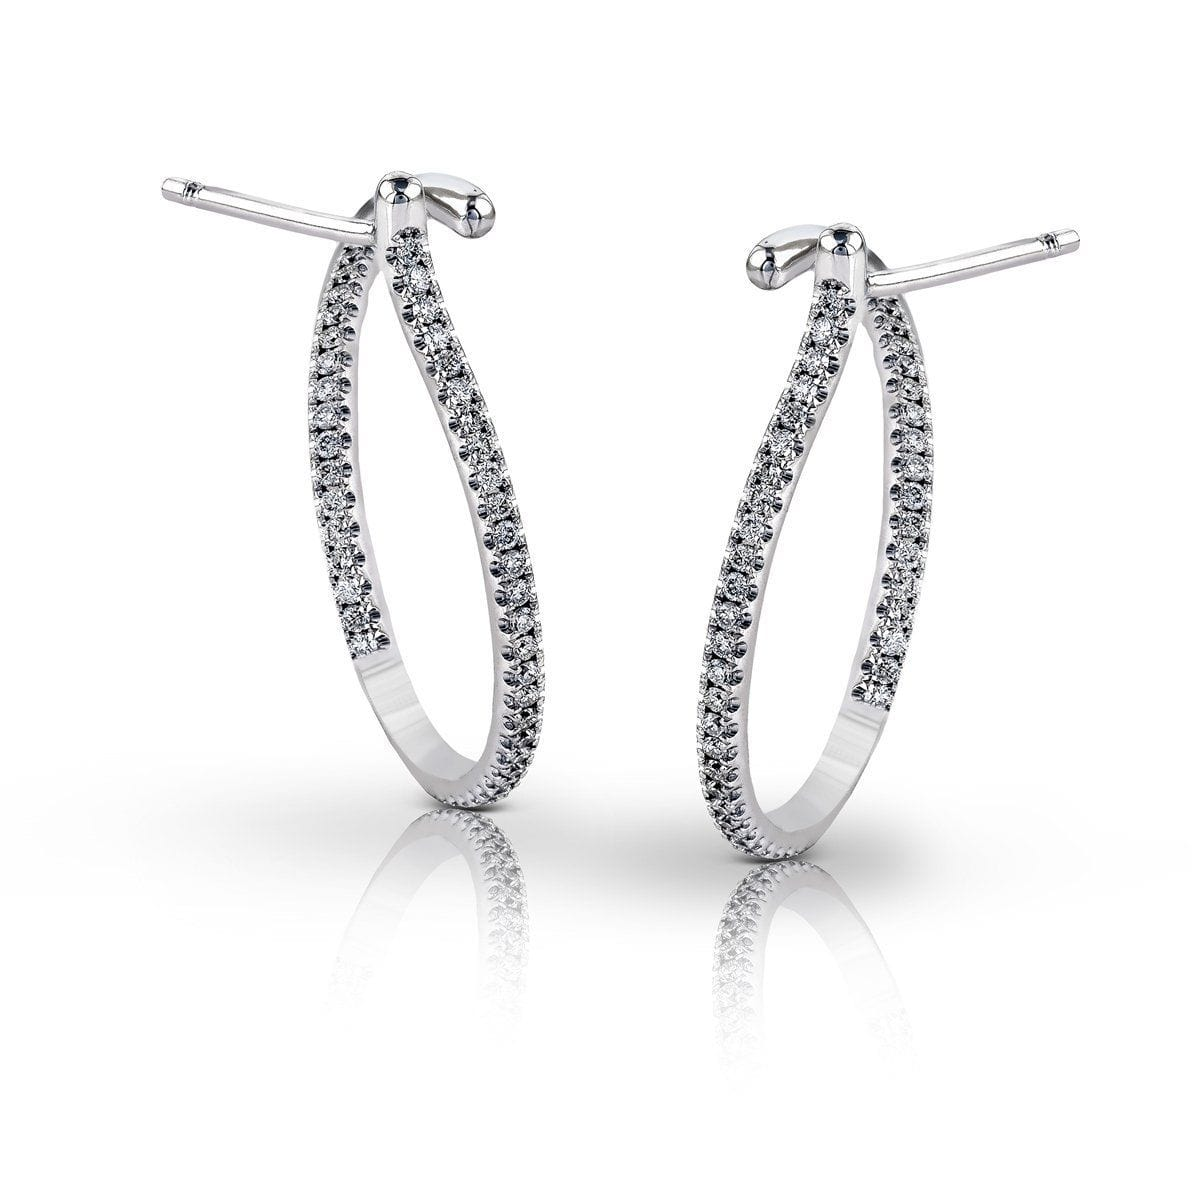 White Gold & Diamond Earrings - GE165-W-Simon G.-Renee Taylor Gallery